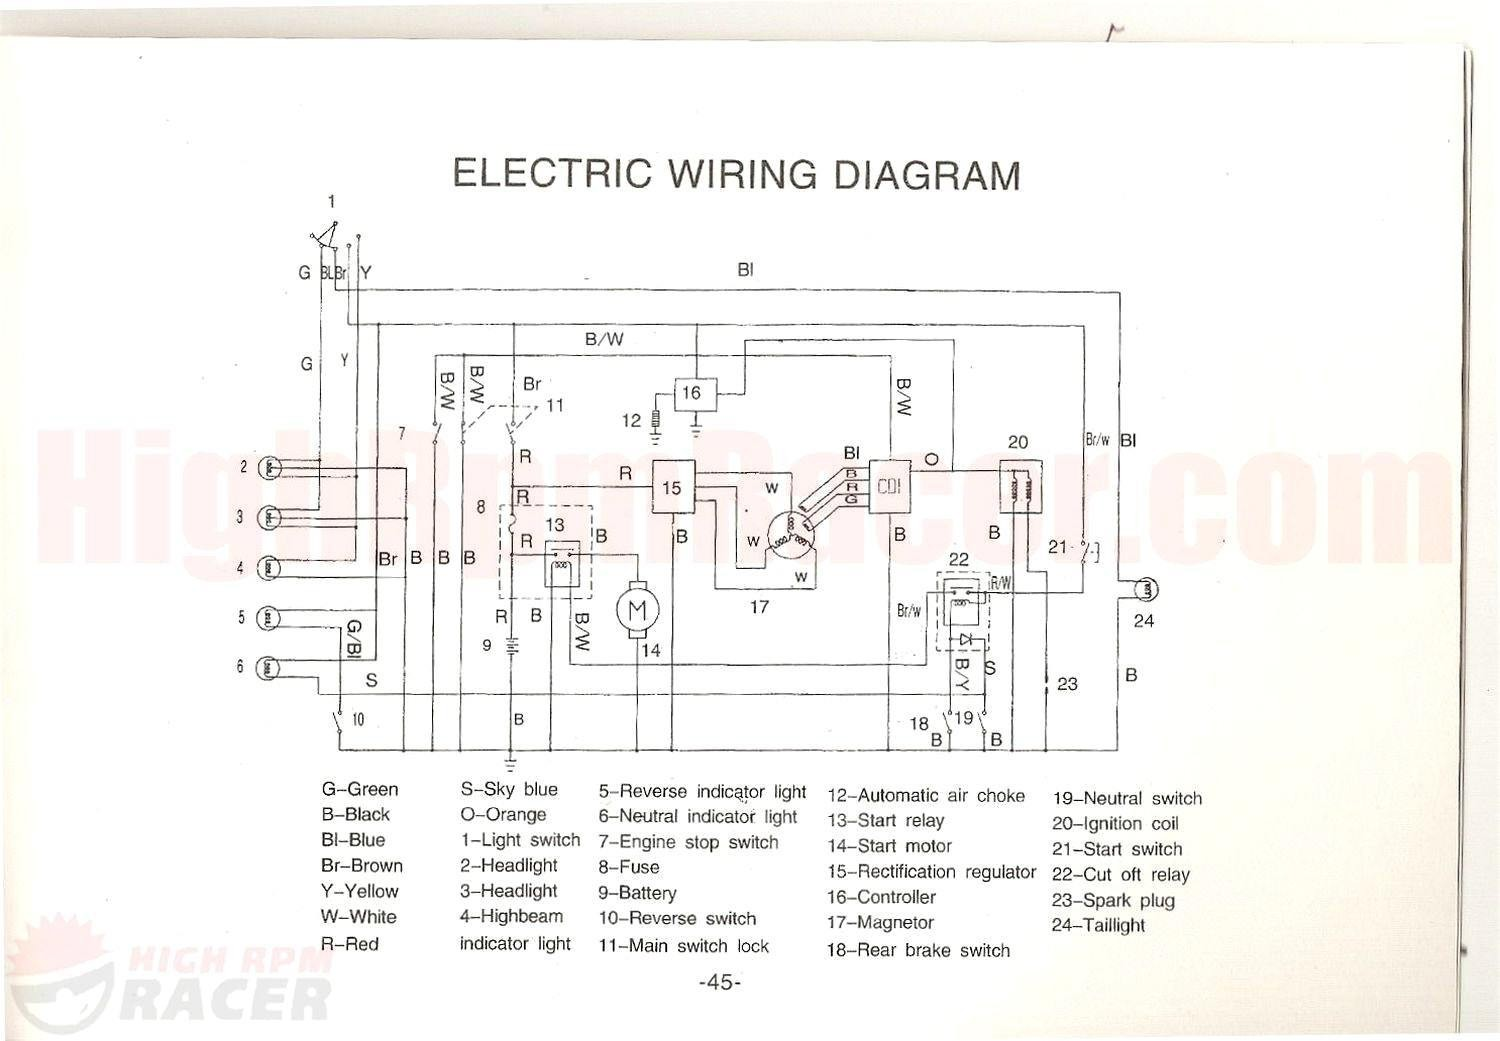 kazuma 50cc wiring diagram search for wiring diagrams u2022 rh stephenpoon co